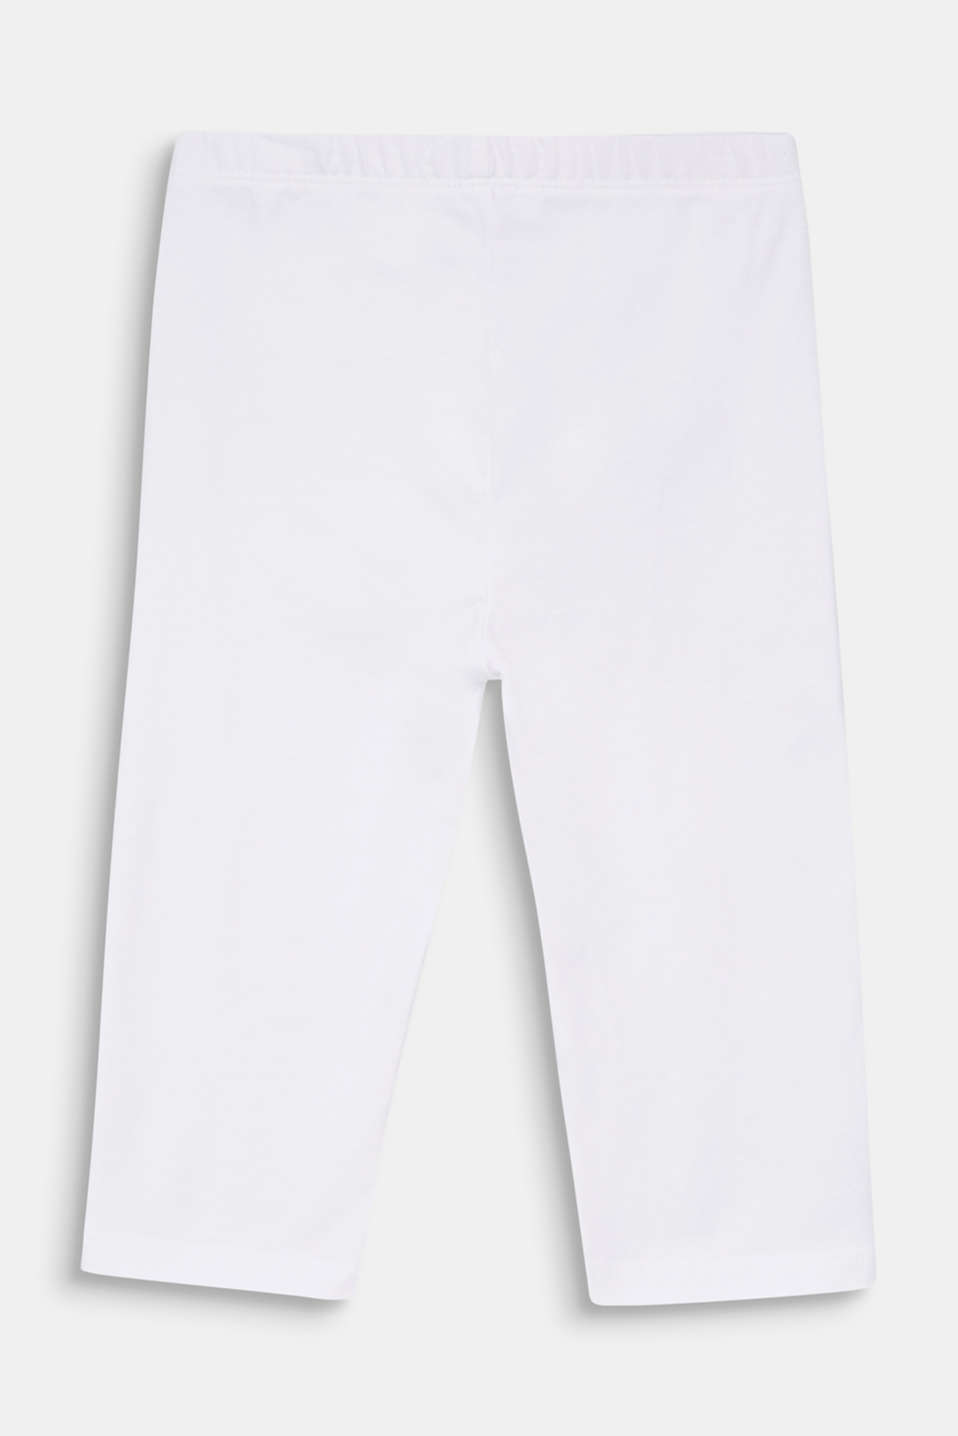 Stretch cotton Capri leggings, WHITE, detail image number 1